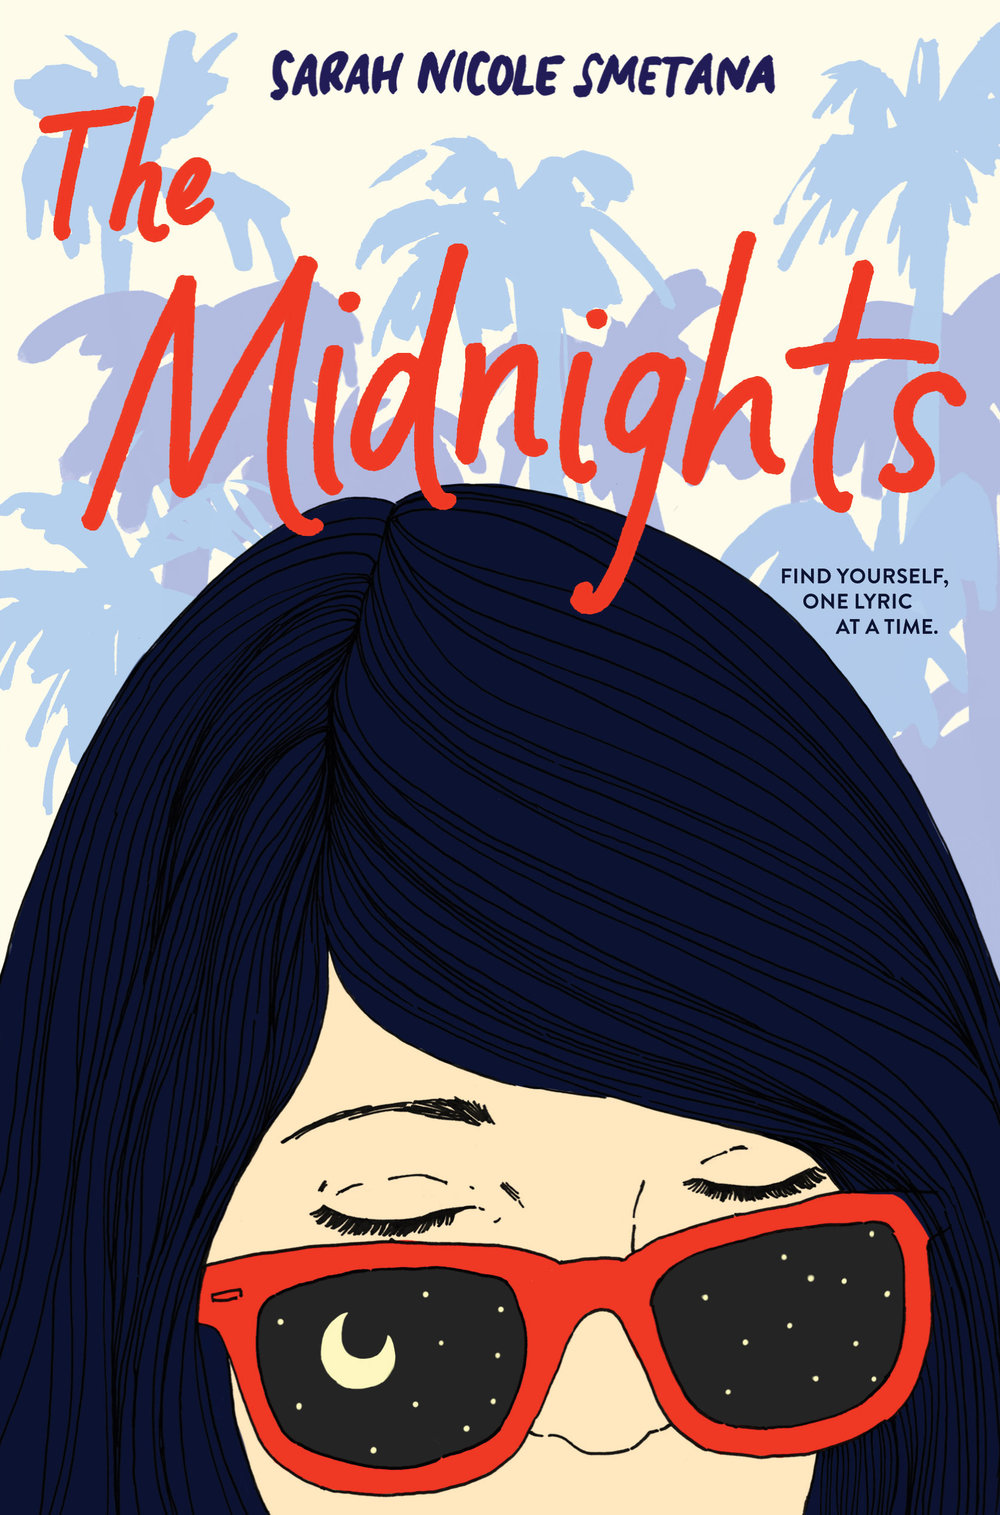 Happy book birthday to THE MIDNIGHTS by Sarah Nicole Smetana! - This voice-driven coming-of-age YA novel is perfect for fans of Katie Cotugno and Playlist for the Dead.Susannah Hayes has never been in the spotlight, but she dreams of following her father, a former rock star, onto the stage. As senior year begins, she's more interested in composing impressive chord progressions than college essays, certain that if she writes the perfect song, her father might finally look up from the past long enough to see her. But when he dies unexpectedly, her dreams--and her reality--shatter.While Susannah struggles with grief, her mother uproots them to a new city. There, Susannah realizes she can reinvent herself however she wants: a confident singer-songwriter, member of a hip band, embraced by an effortlessly cool best friend. But Susannah is not the only one keeping secrets, and soon, harsh revelations threaten to unravel her life once again.Set against the scintillating landscape of Southern California, The Midnights is an evocative coming-of-age debut about loss, creativity, and finding your voice while you're still finding yourself.